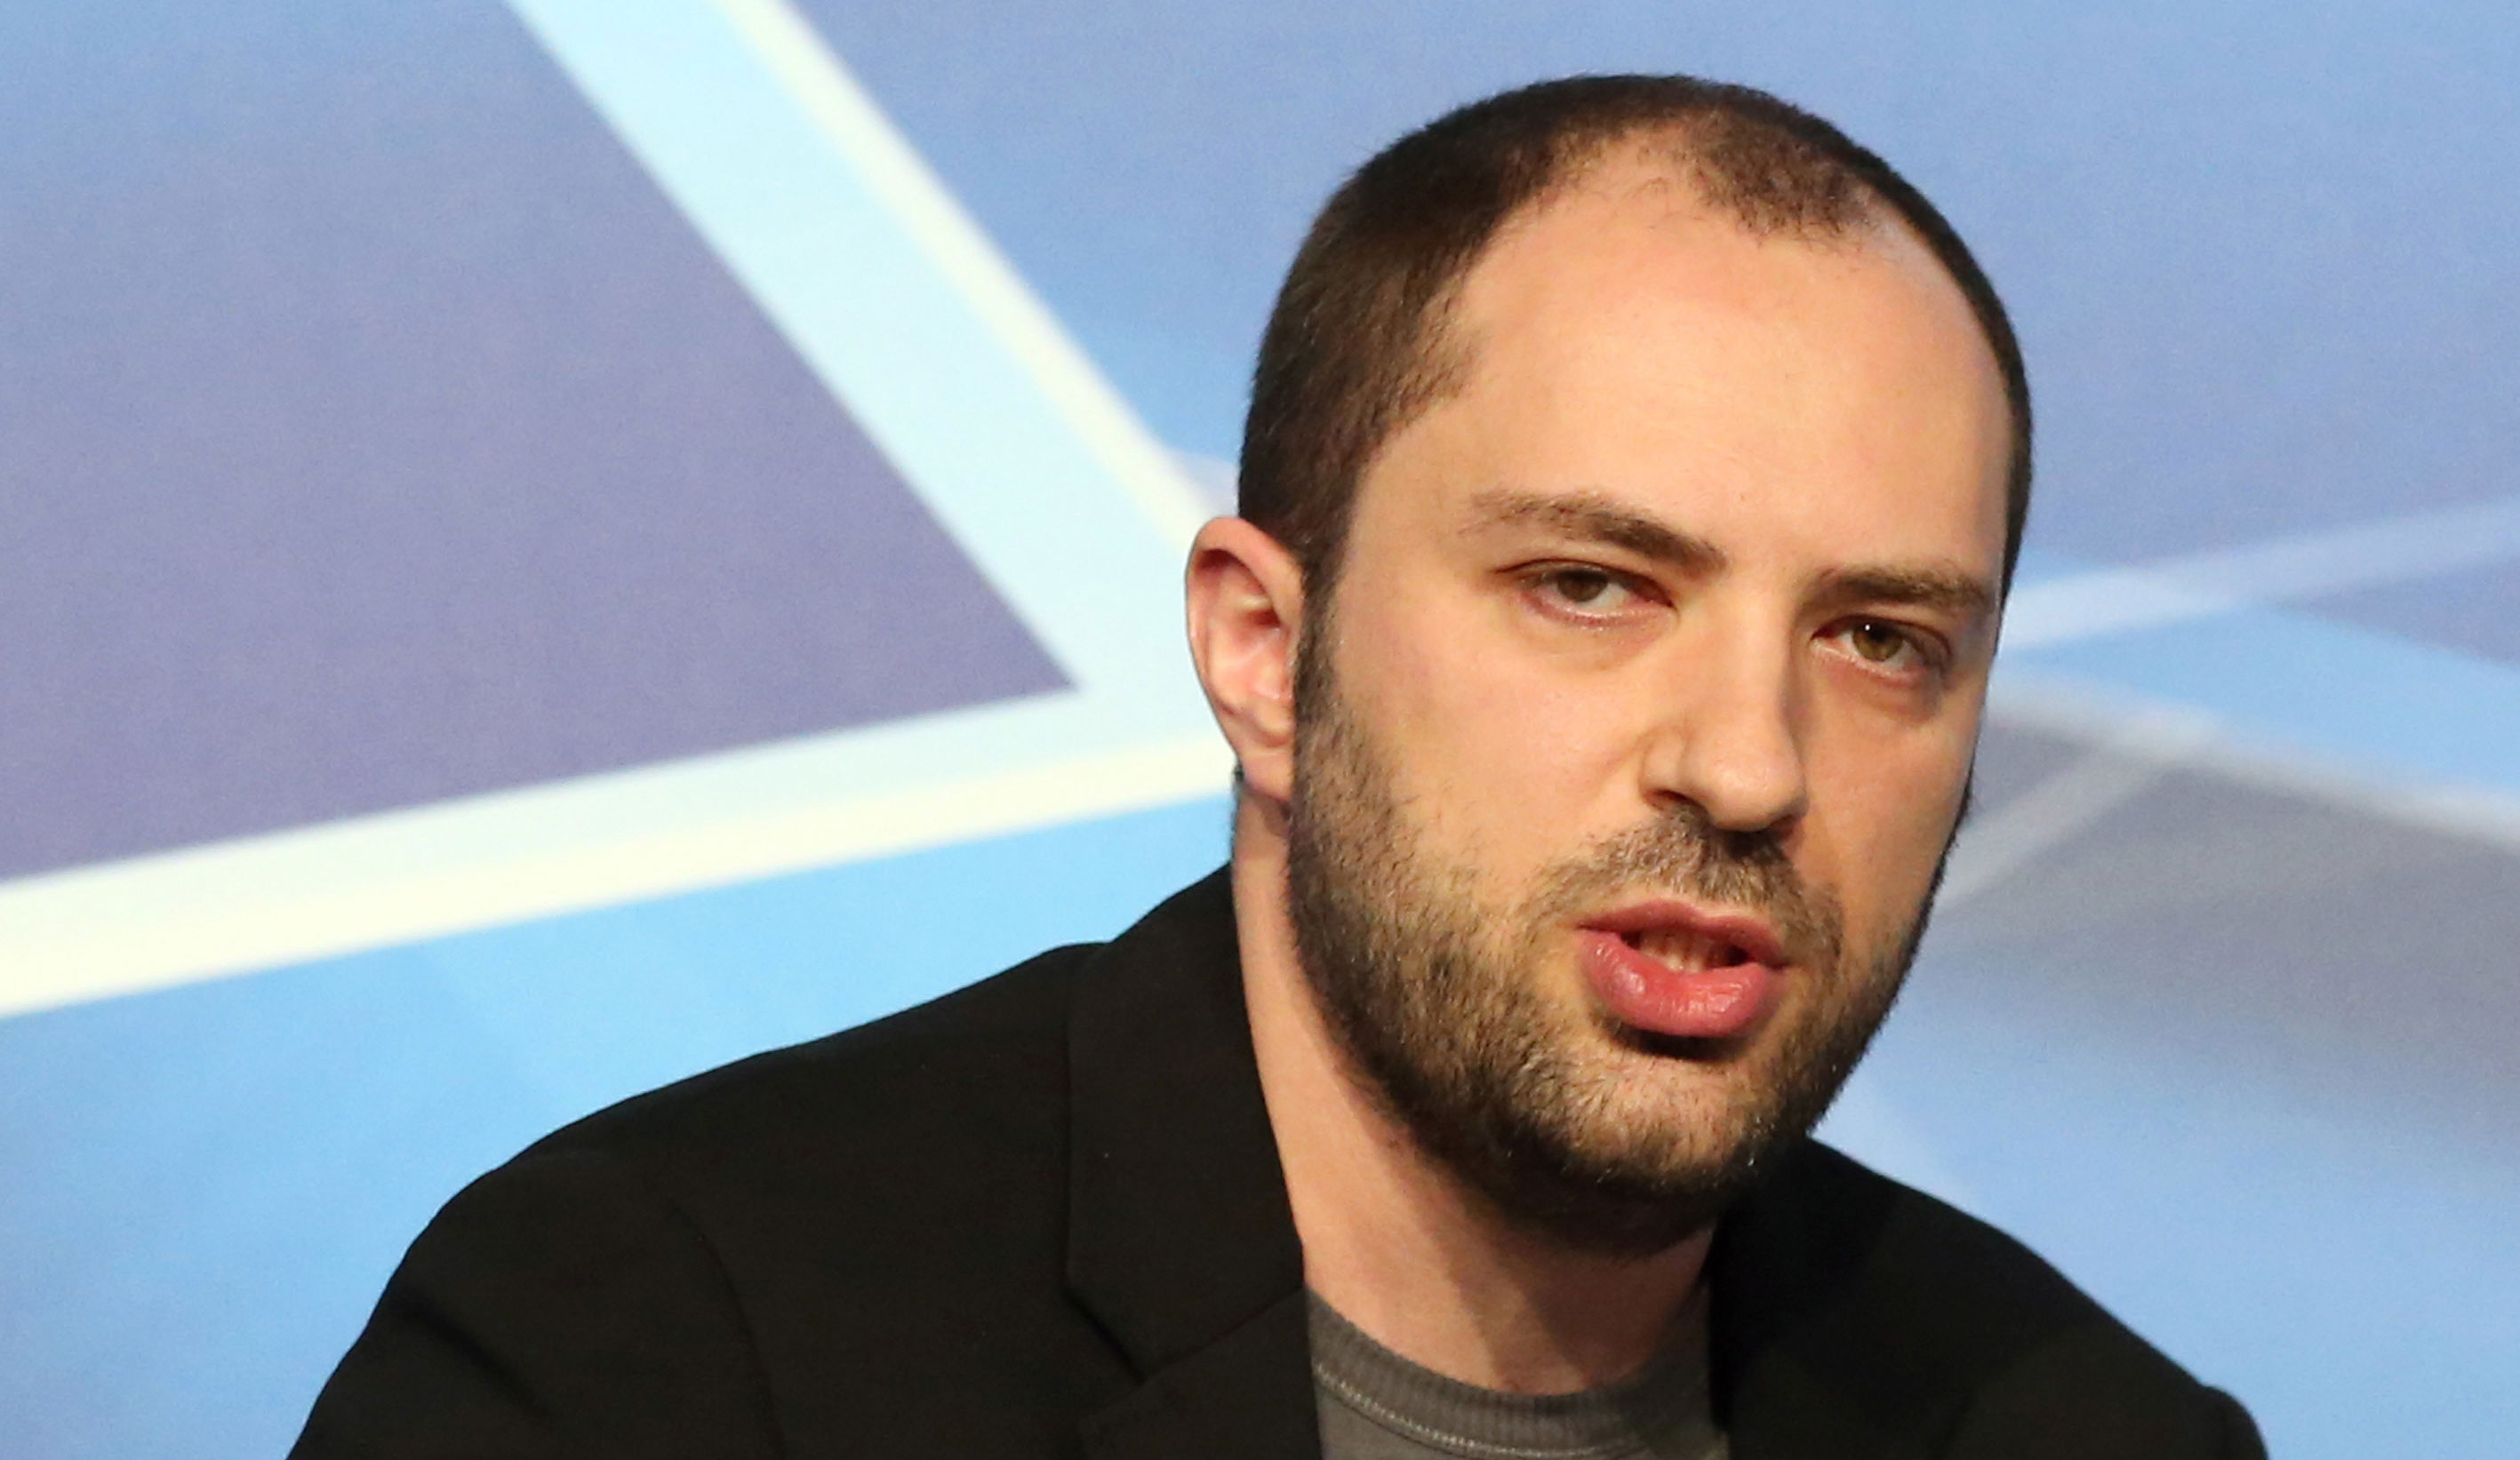 WhatsApp CEO Jan Koum Confirms He's Quitting Facebook